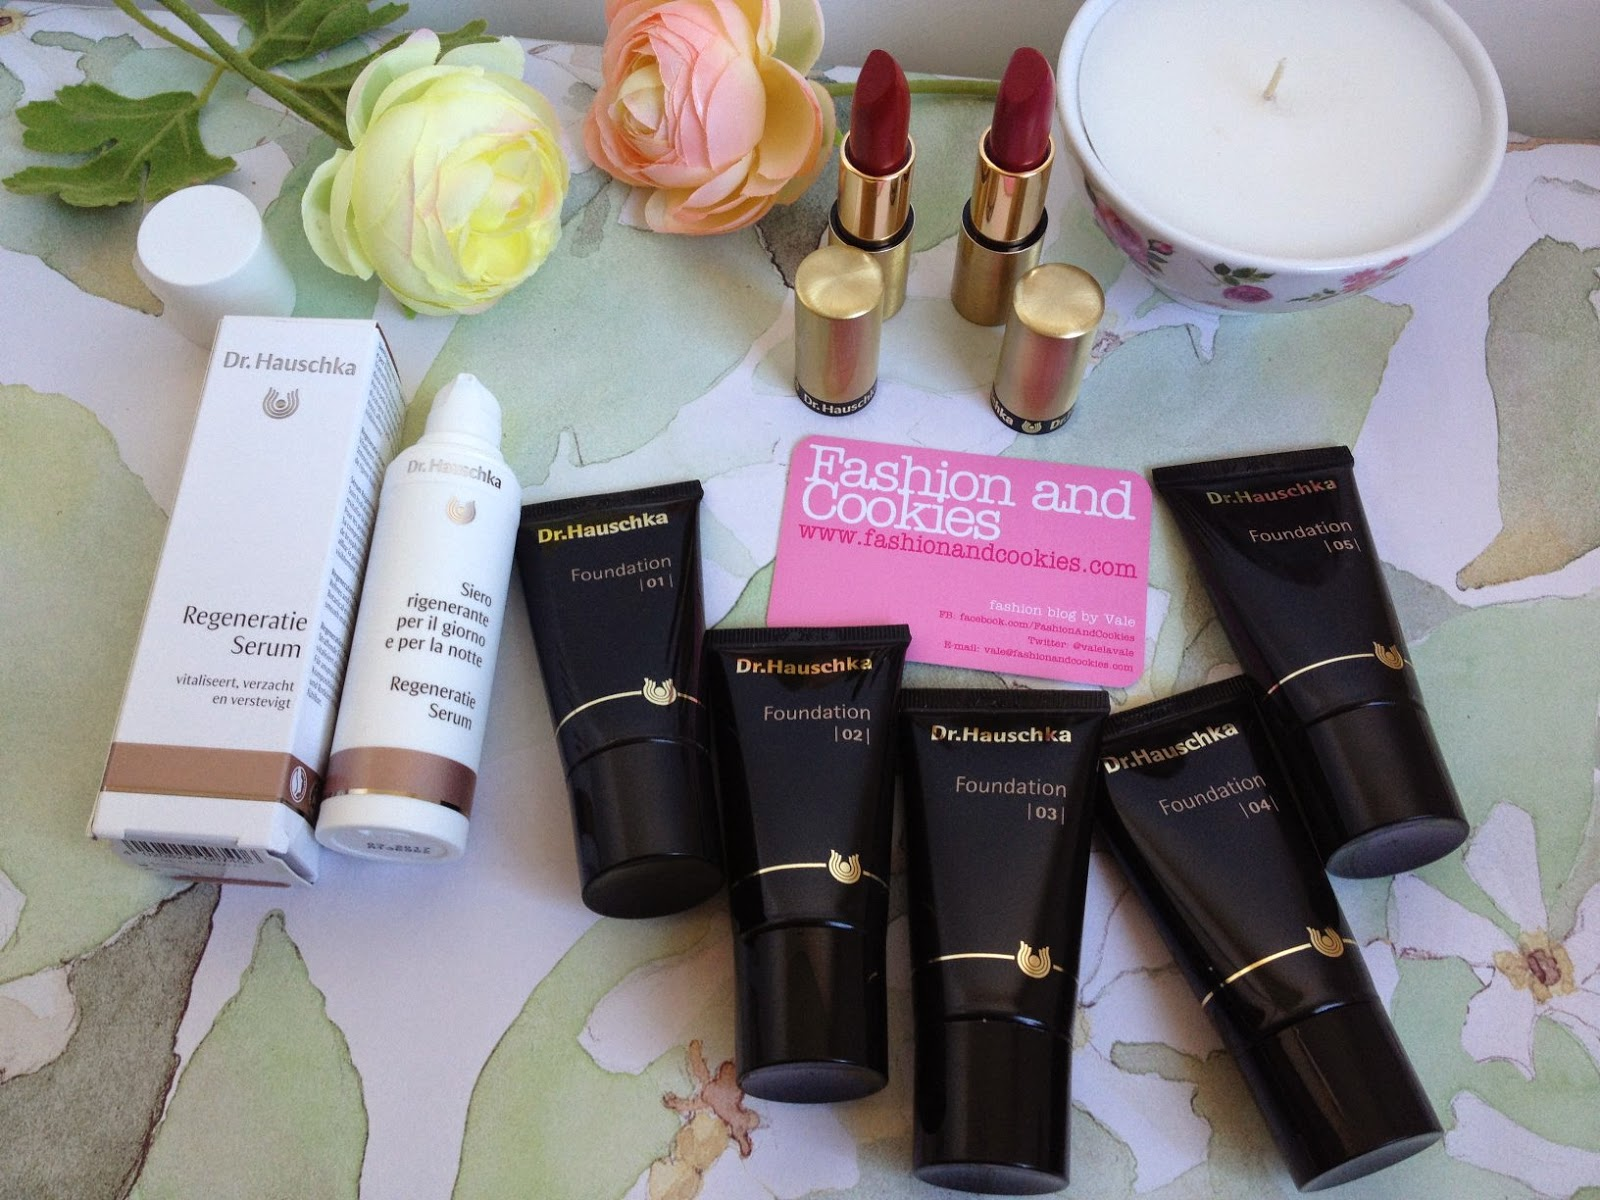 new Dr. Hauschka foundation, nuovo fondotinta Dr. Hauschka, Fashion and Cookies fashion blog, recensione fondotinta Dr. Hauschka, beauty blogger